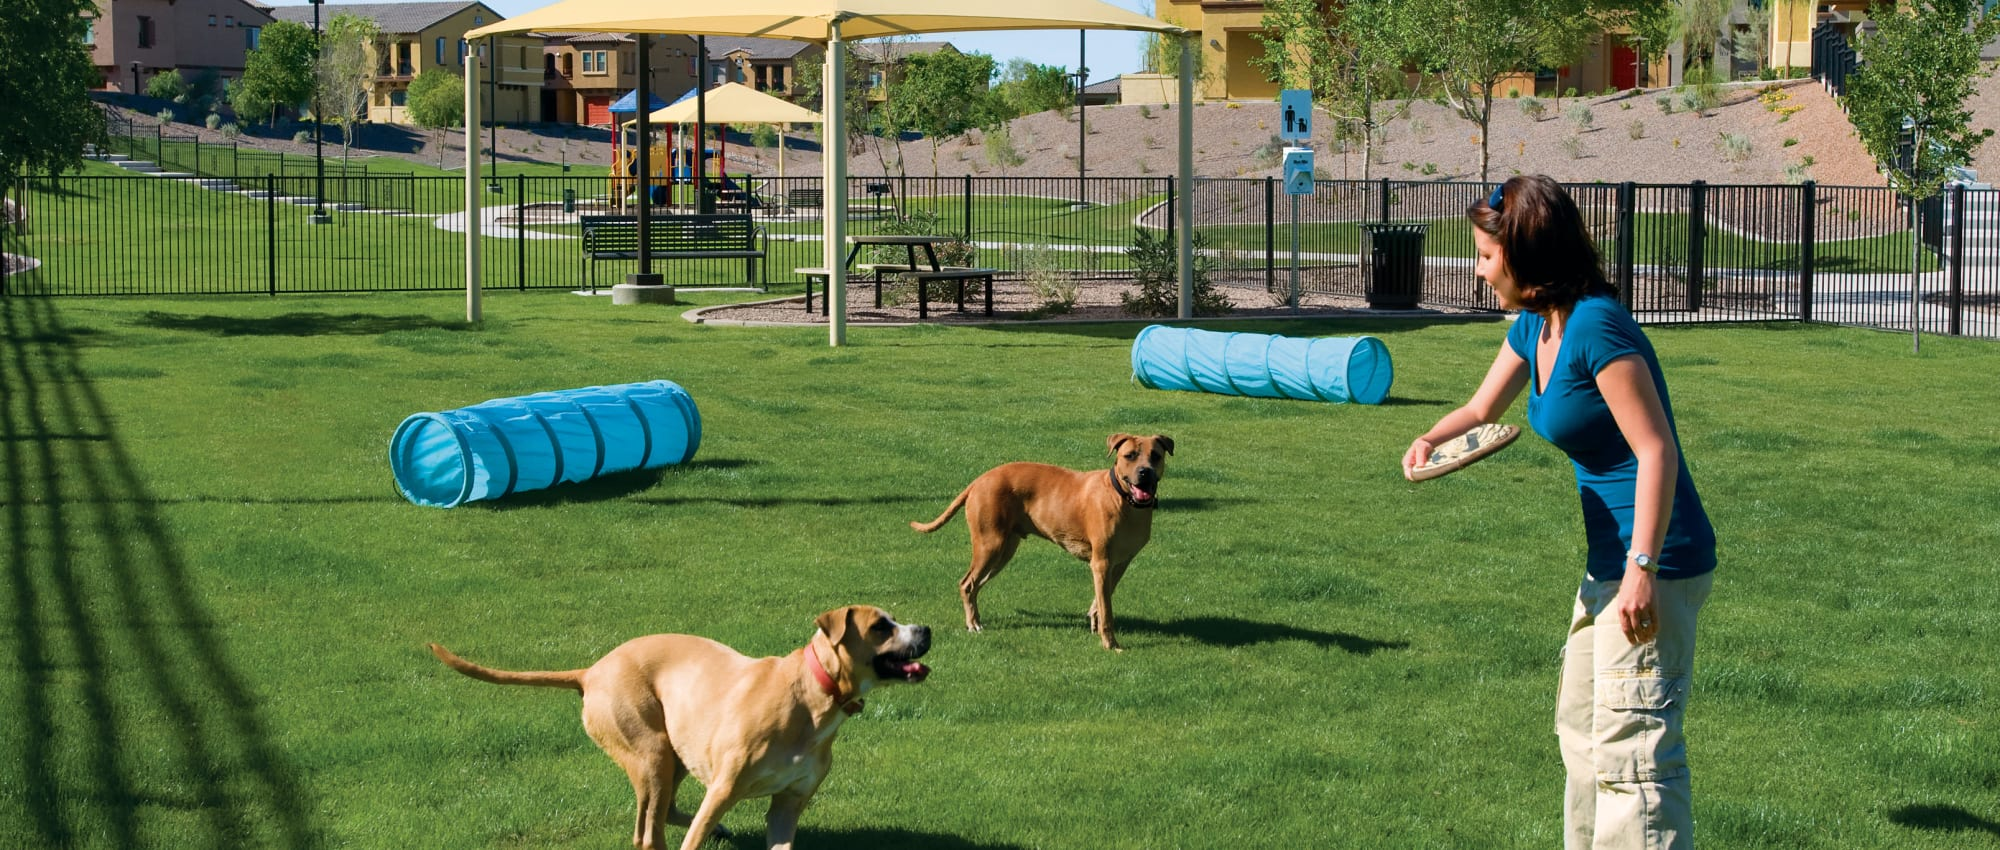 Dog agility course in the onsite dog park at one of Mark-Taylor's Tempe Pet Friendly Communities in Tempe, Arizona